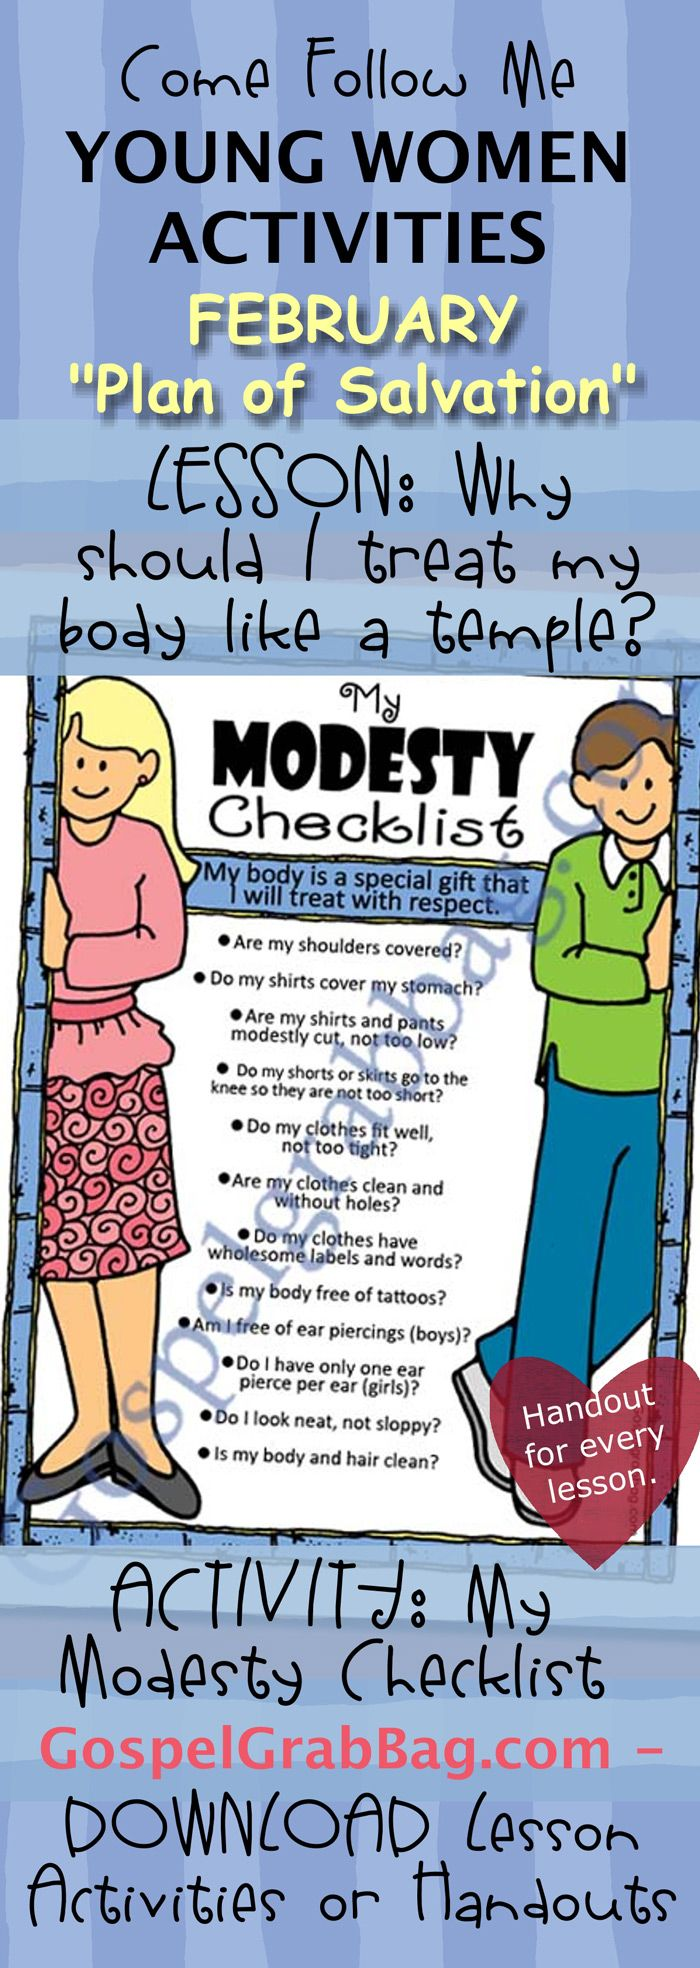 BODY IS A TEMPLE – MODESTY: Come Follow Me – LDS Young Women Activities, February Theme: The Plan of Salvation, Lesson Topic #7: Why should I treat my body like a temple? handout for every lesson, ACTIVITY: My Modesty Checklist, Gospel grab bag – handouts to download from gospelgrabbag.com